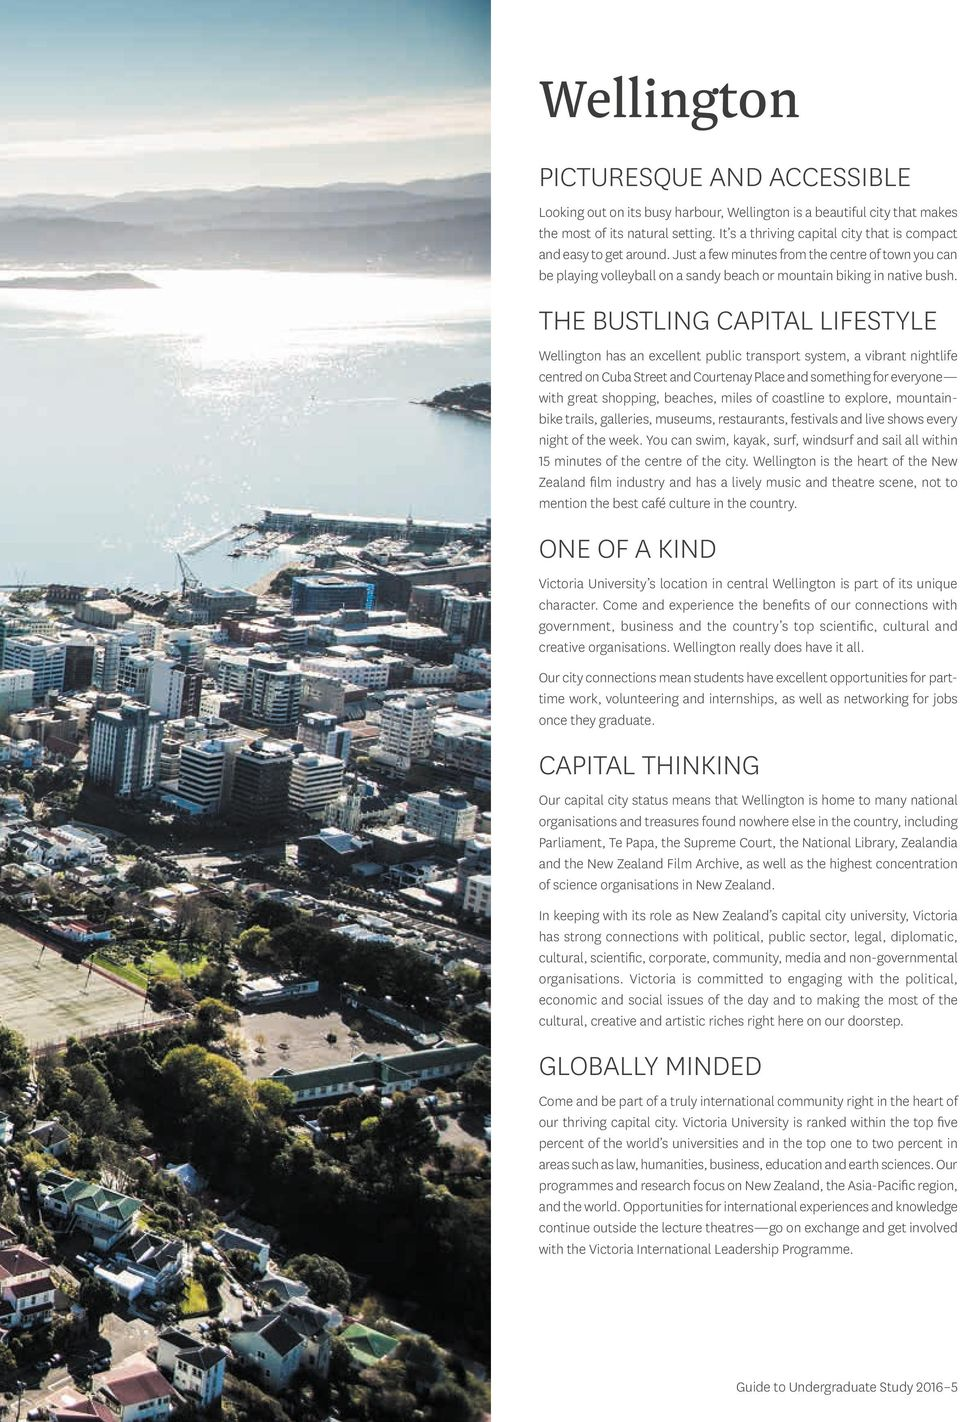 THE BUSTLING CAPITAL LIFESTYLE Wellington has an excellent public transport system, a vibrant nightlife centred on Cuba Street and Courtenay Place and something for everyone with great shopping,